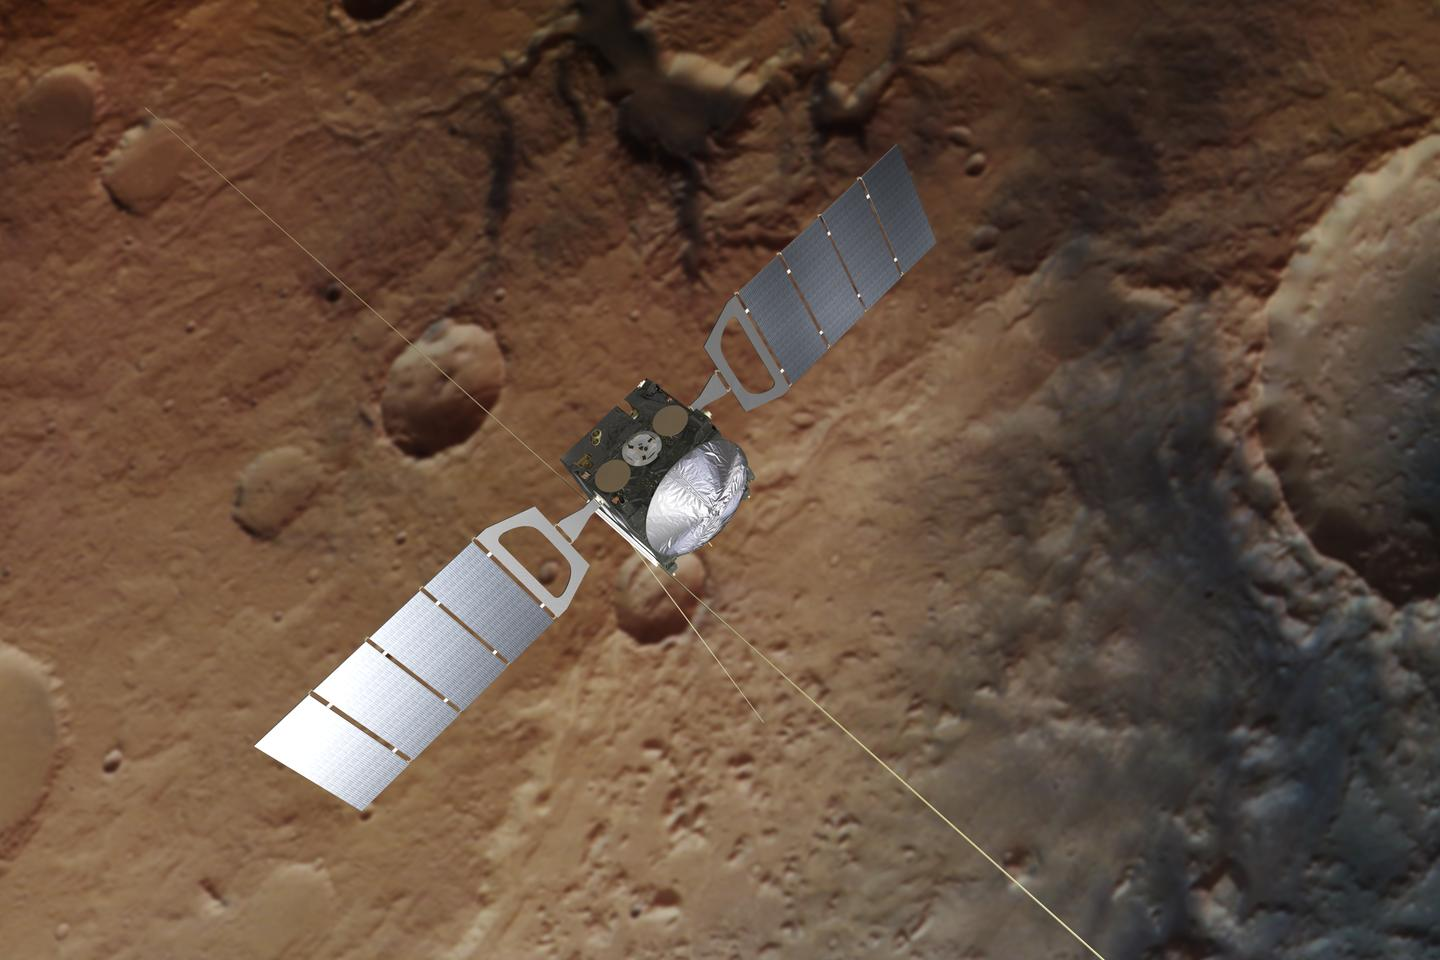 Artist's concept of the Mars Express spacecraft, whose data has helped provide new insights into cosmic rays